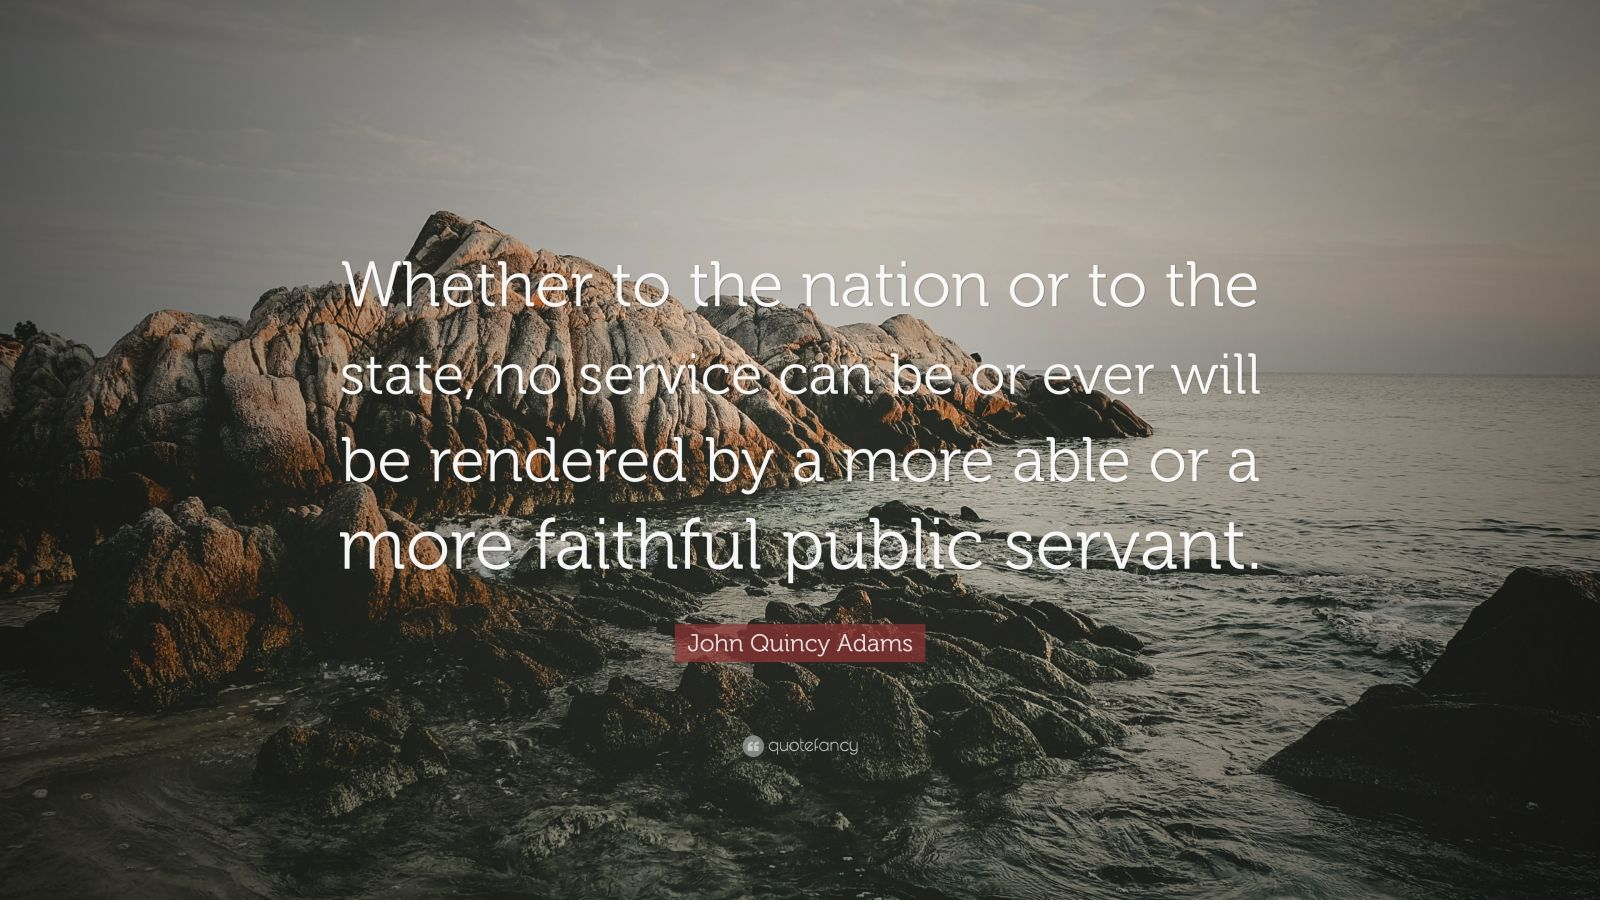 """John Quincy Adams Quote: """"Whether to the nation or to the state, no service can be or ever will be rendered by a more able or a more faithful public servant."""""""